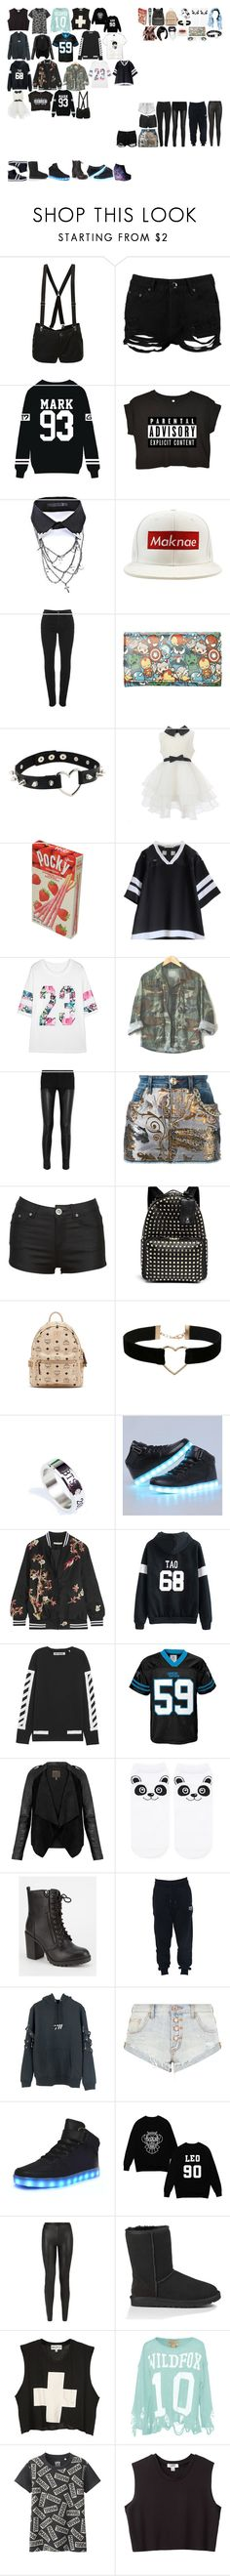 """Packing for Hogwarts"" by kaelighofficial ❤ liked on Polyvore featuring Abbey Dawn, Boohoo, deepstyle, Vivienne Westwood Anglomania, Marvel, Richie House, sOUP, Givenchy, Philipp Plein and Valentino"